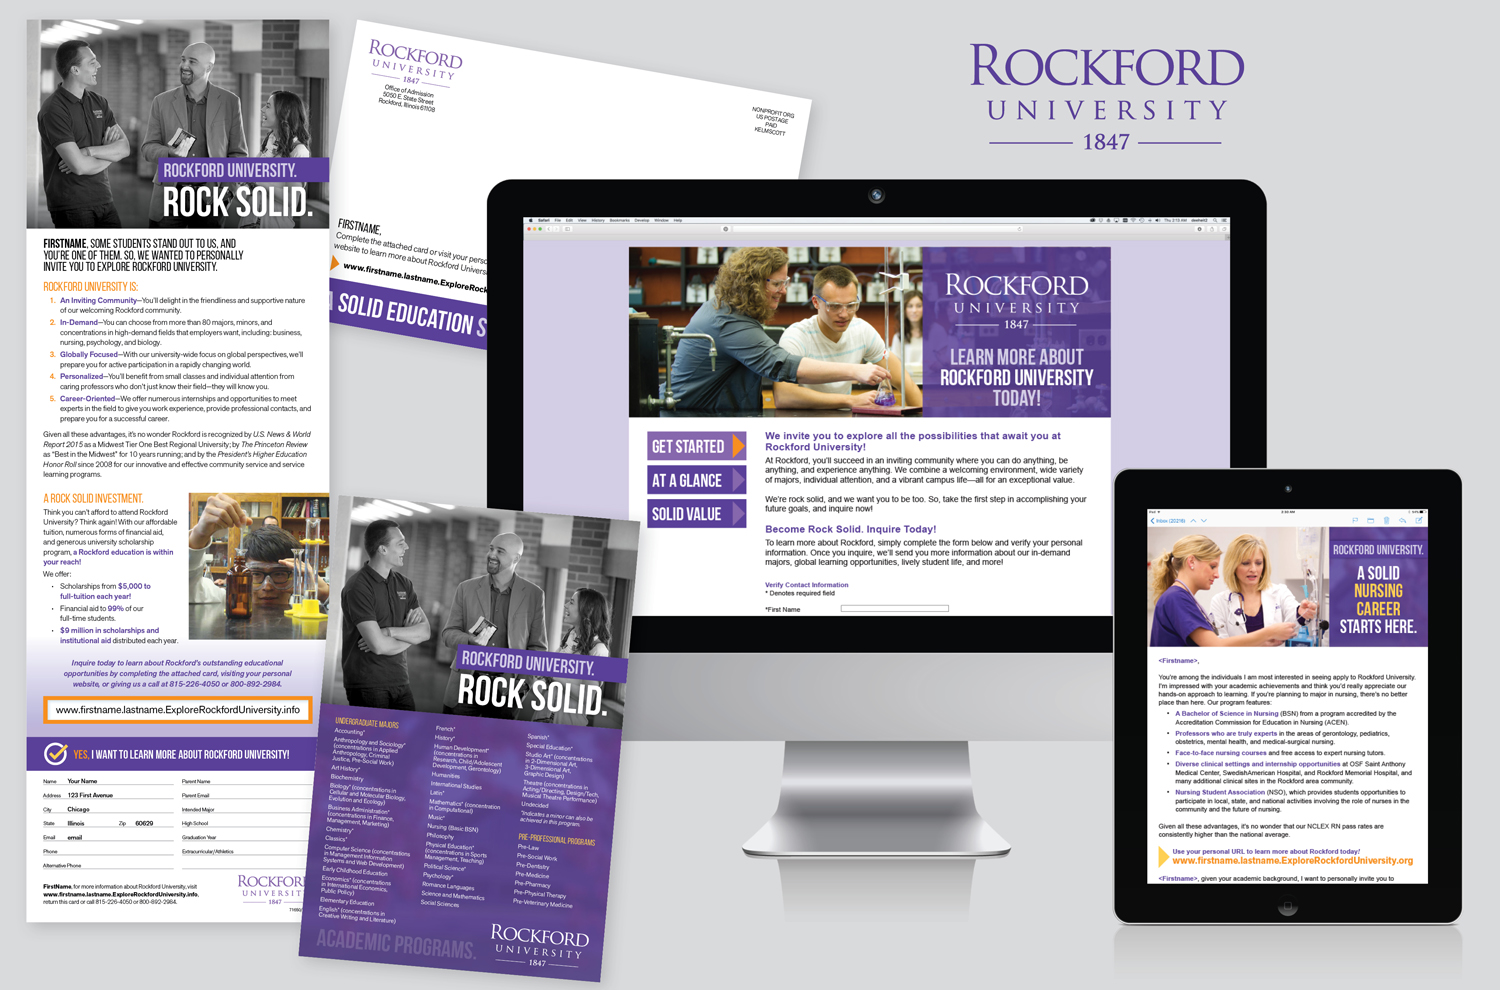 SOPHOMORE-JUNIOR SEARCH FOR ROCKFORD COLLEGE